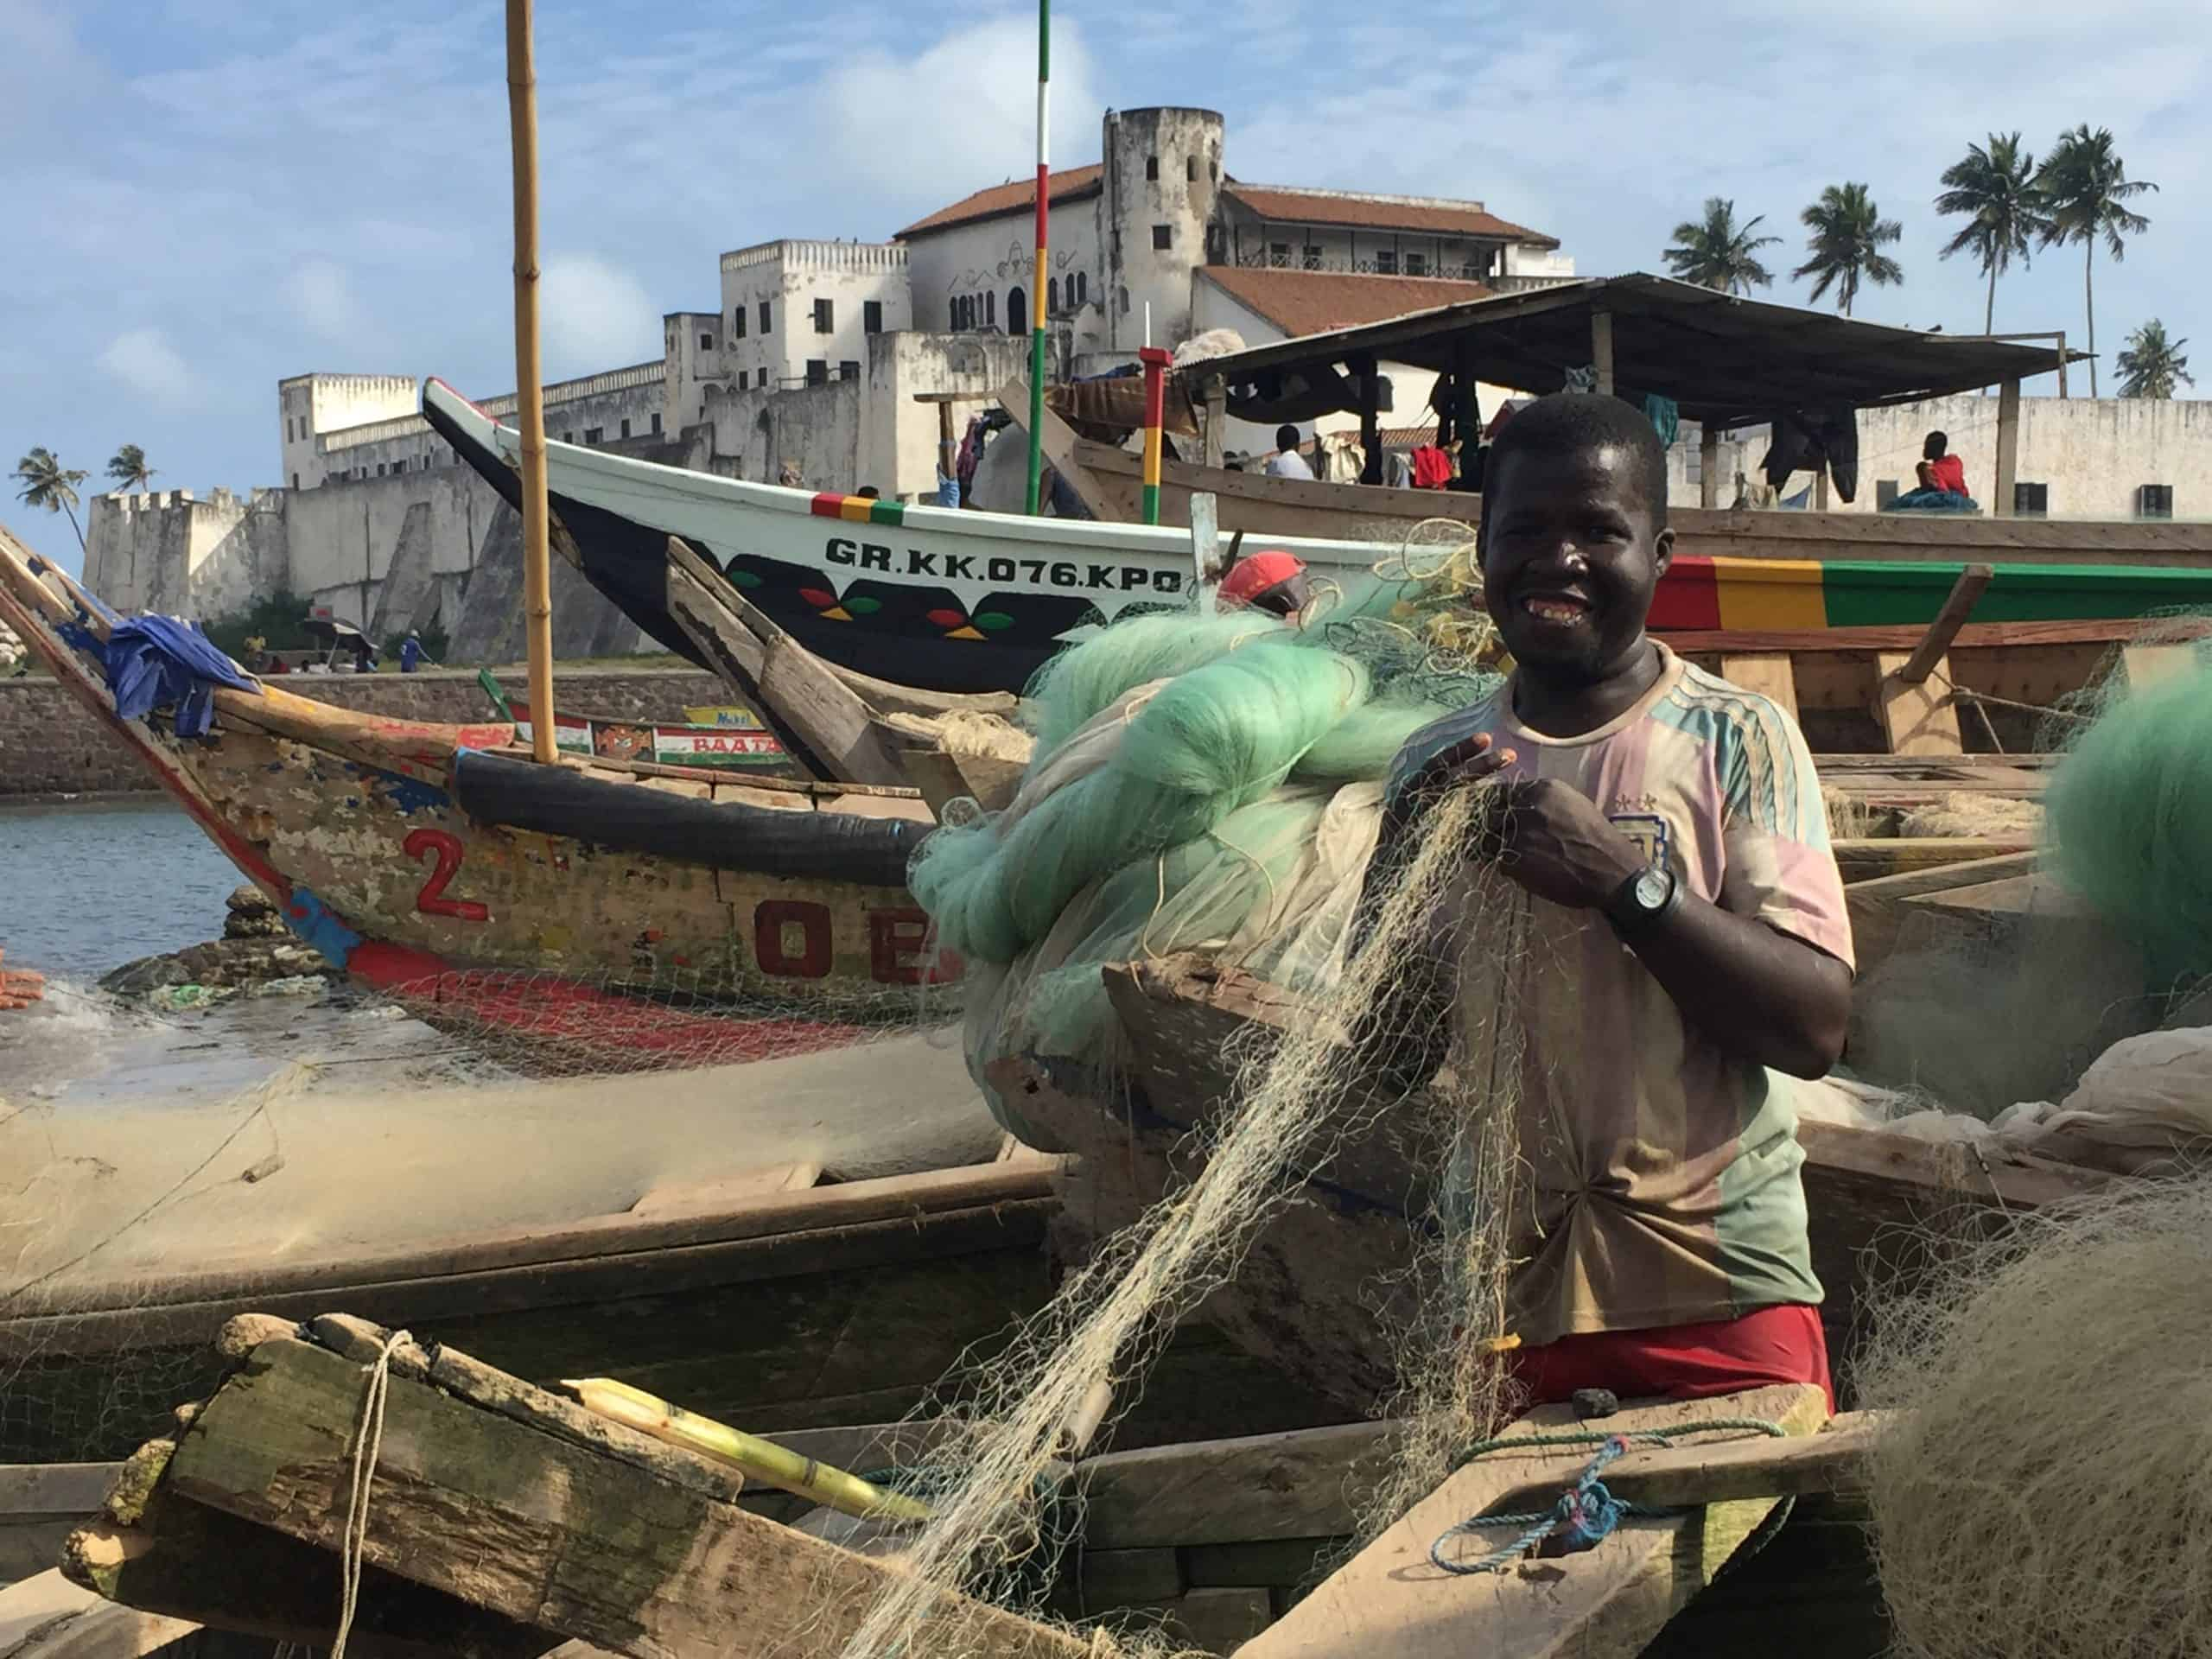 A man holds a fishing net by a boat.